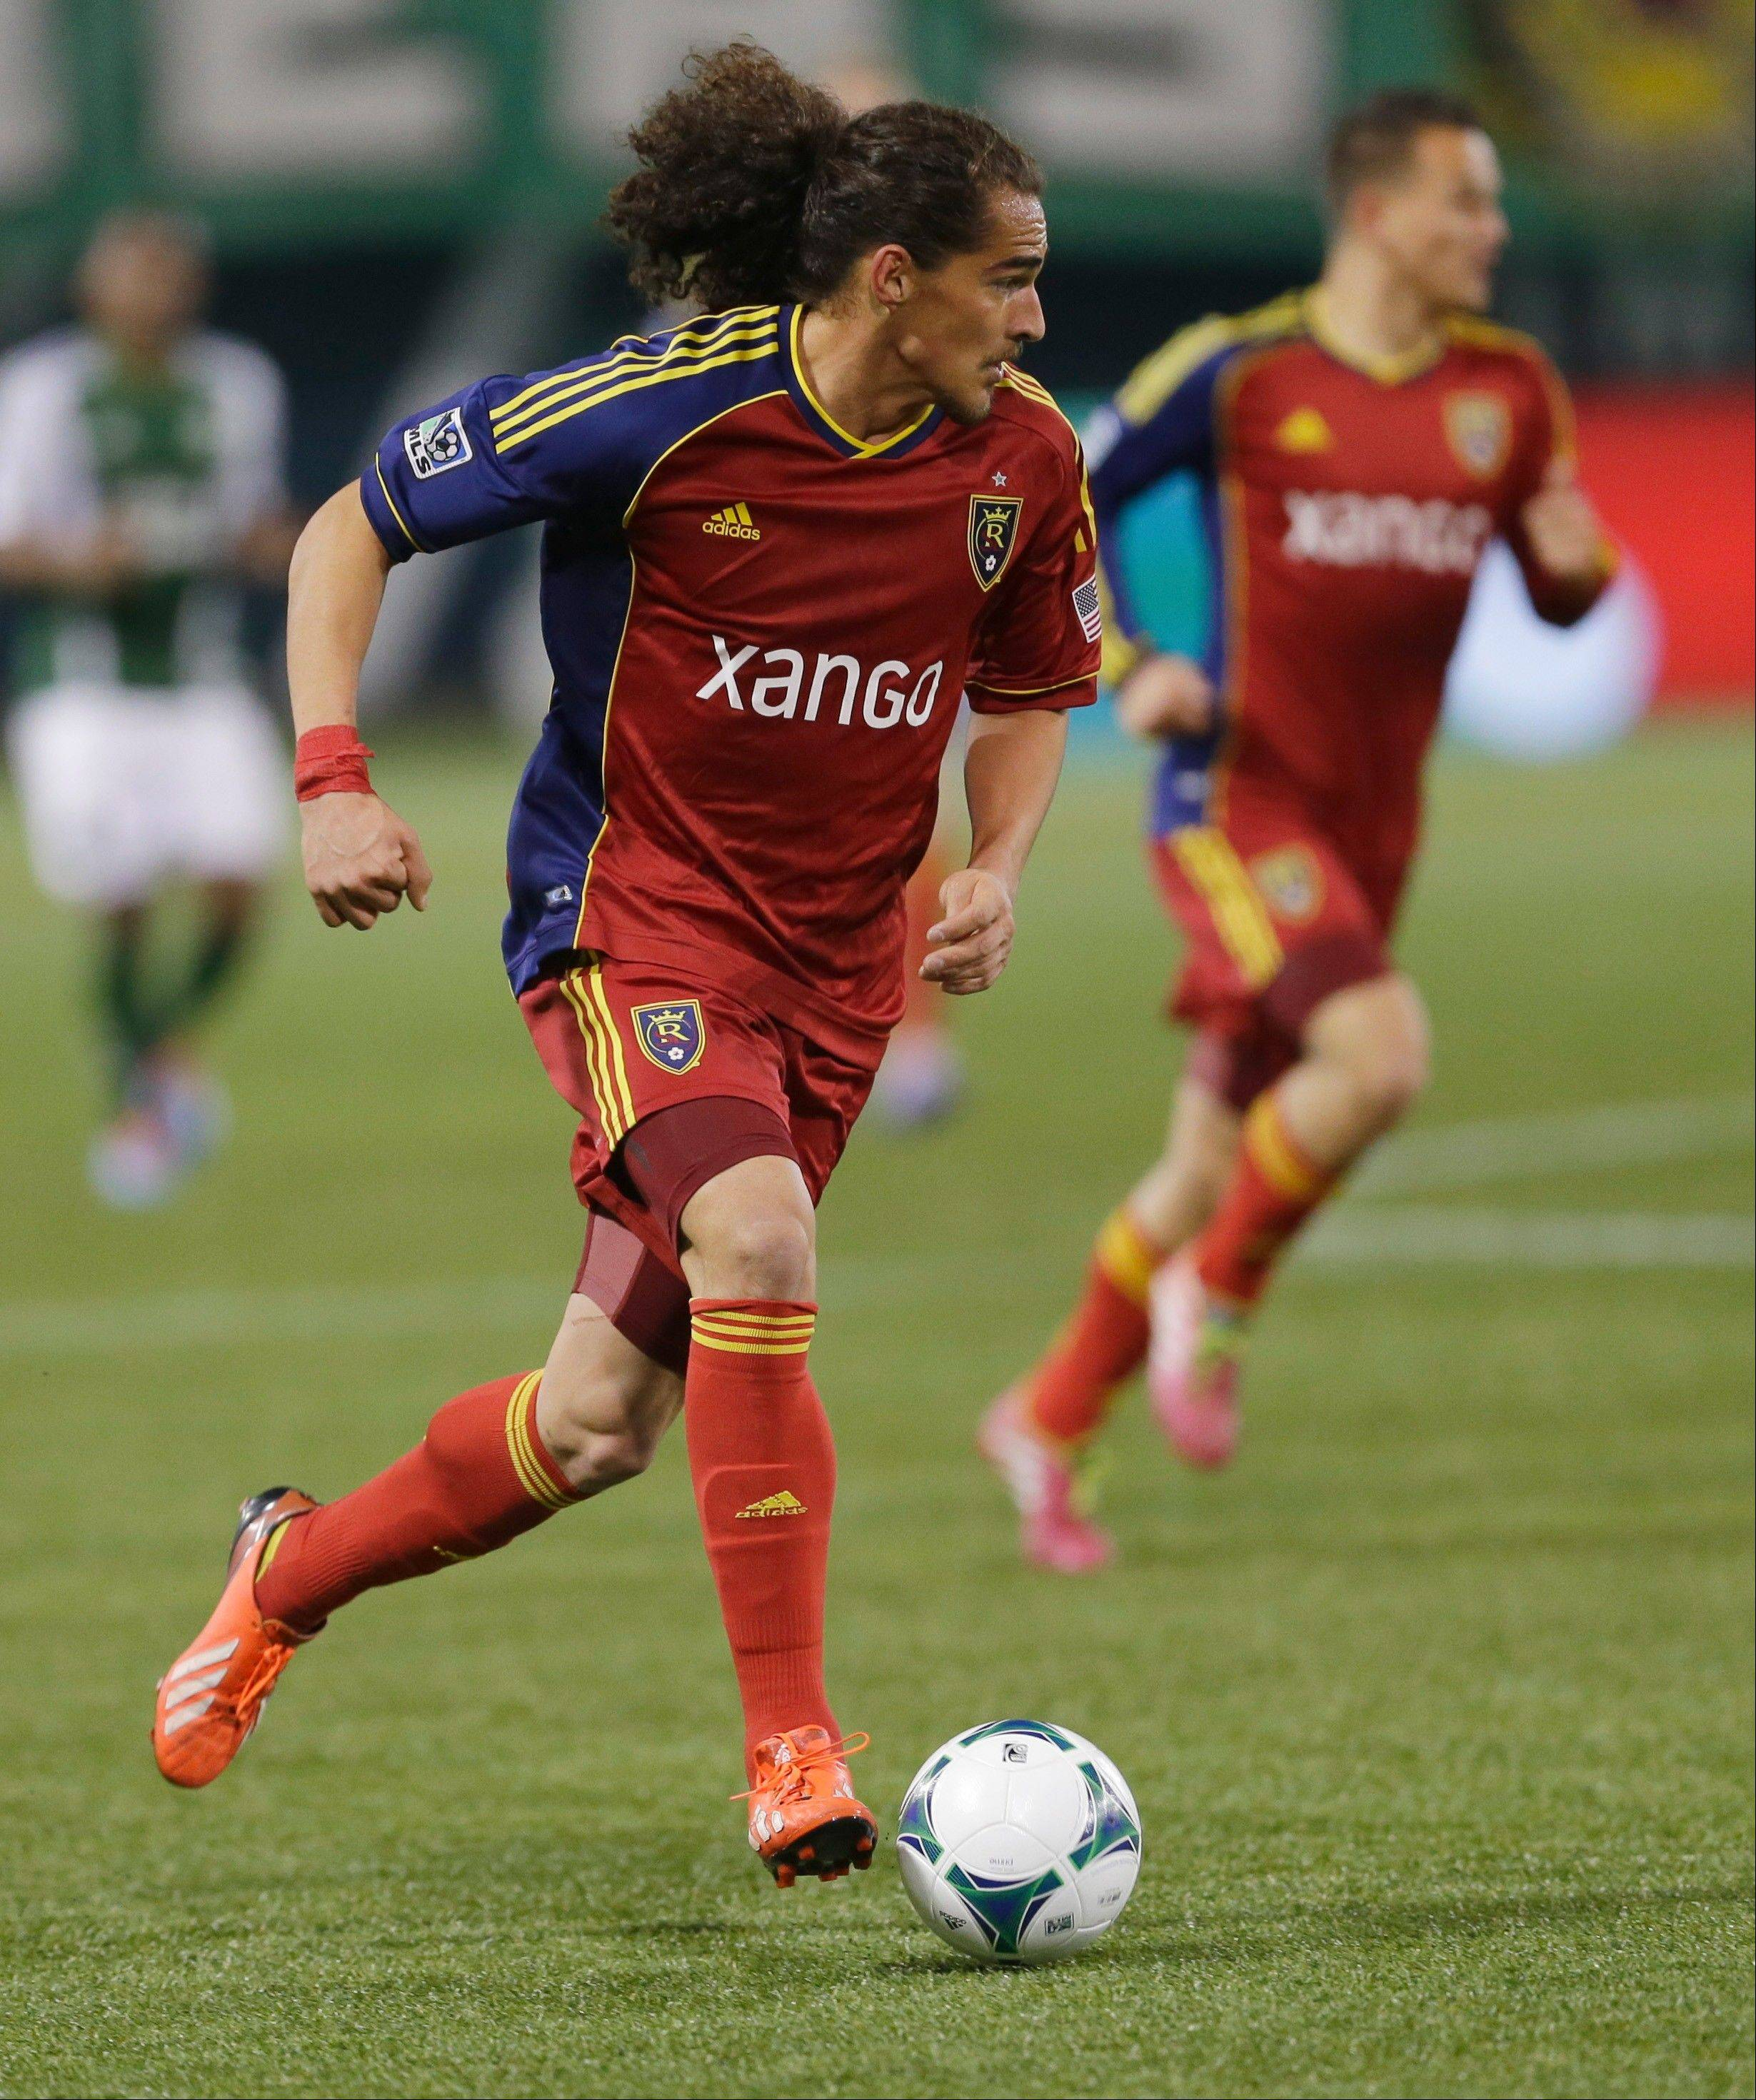 Real Salt Lake�s Devon Sandoval will try to stop Sporting KC from winning its first MLS Cup championship when the two clubs meet today in Kansas City.